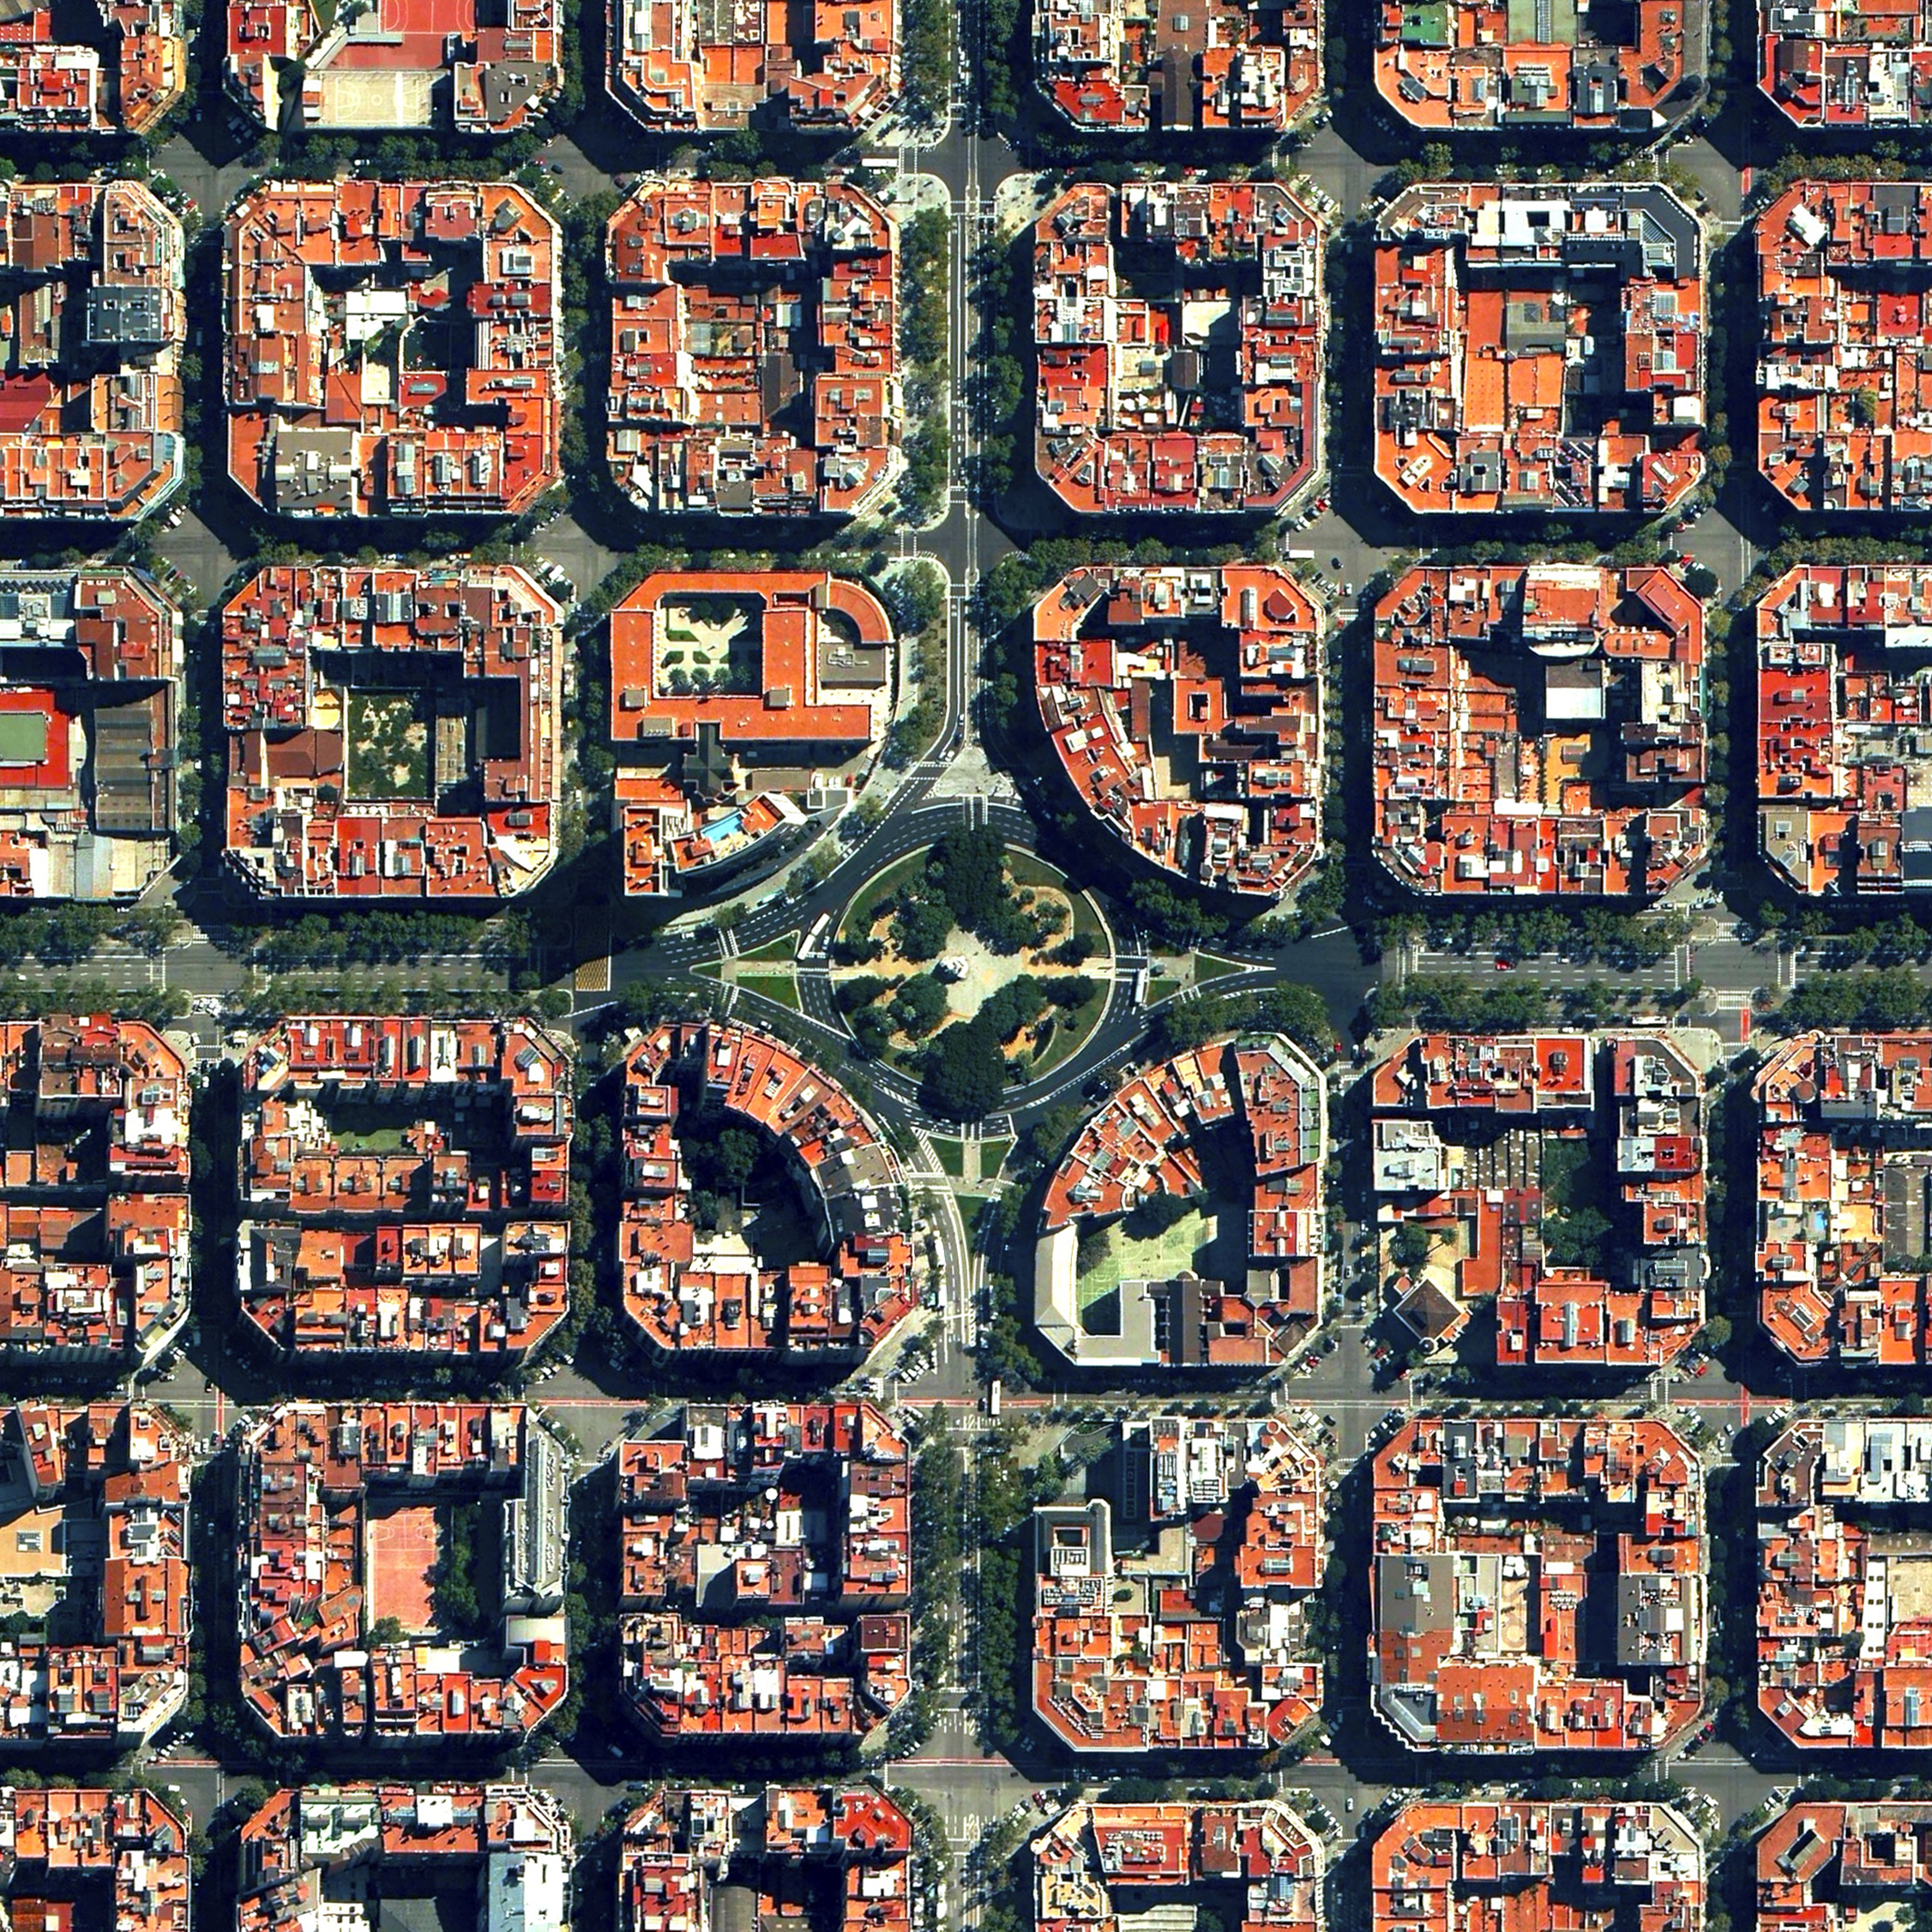 10/28/2015   Eixample   Barcelona, Spain  41°23′27″N 2°09′47″E     The Eixample District in Barcelona, Spain is characterized by its strict grid pattern and apartments with communal courtyards. This thoughtful and visionary design was the work of Ildefons Cerdà. His plan features broad streets that widen at octagonal intersections to create greater visibility with increased sunlight, better ventilation, and more space for short-term parking.